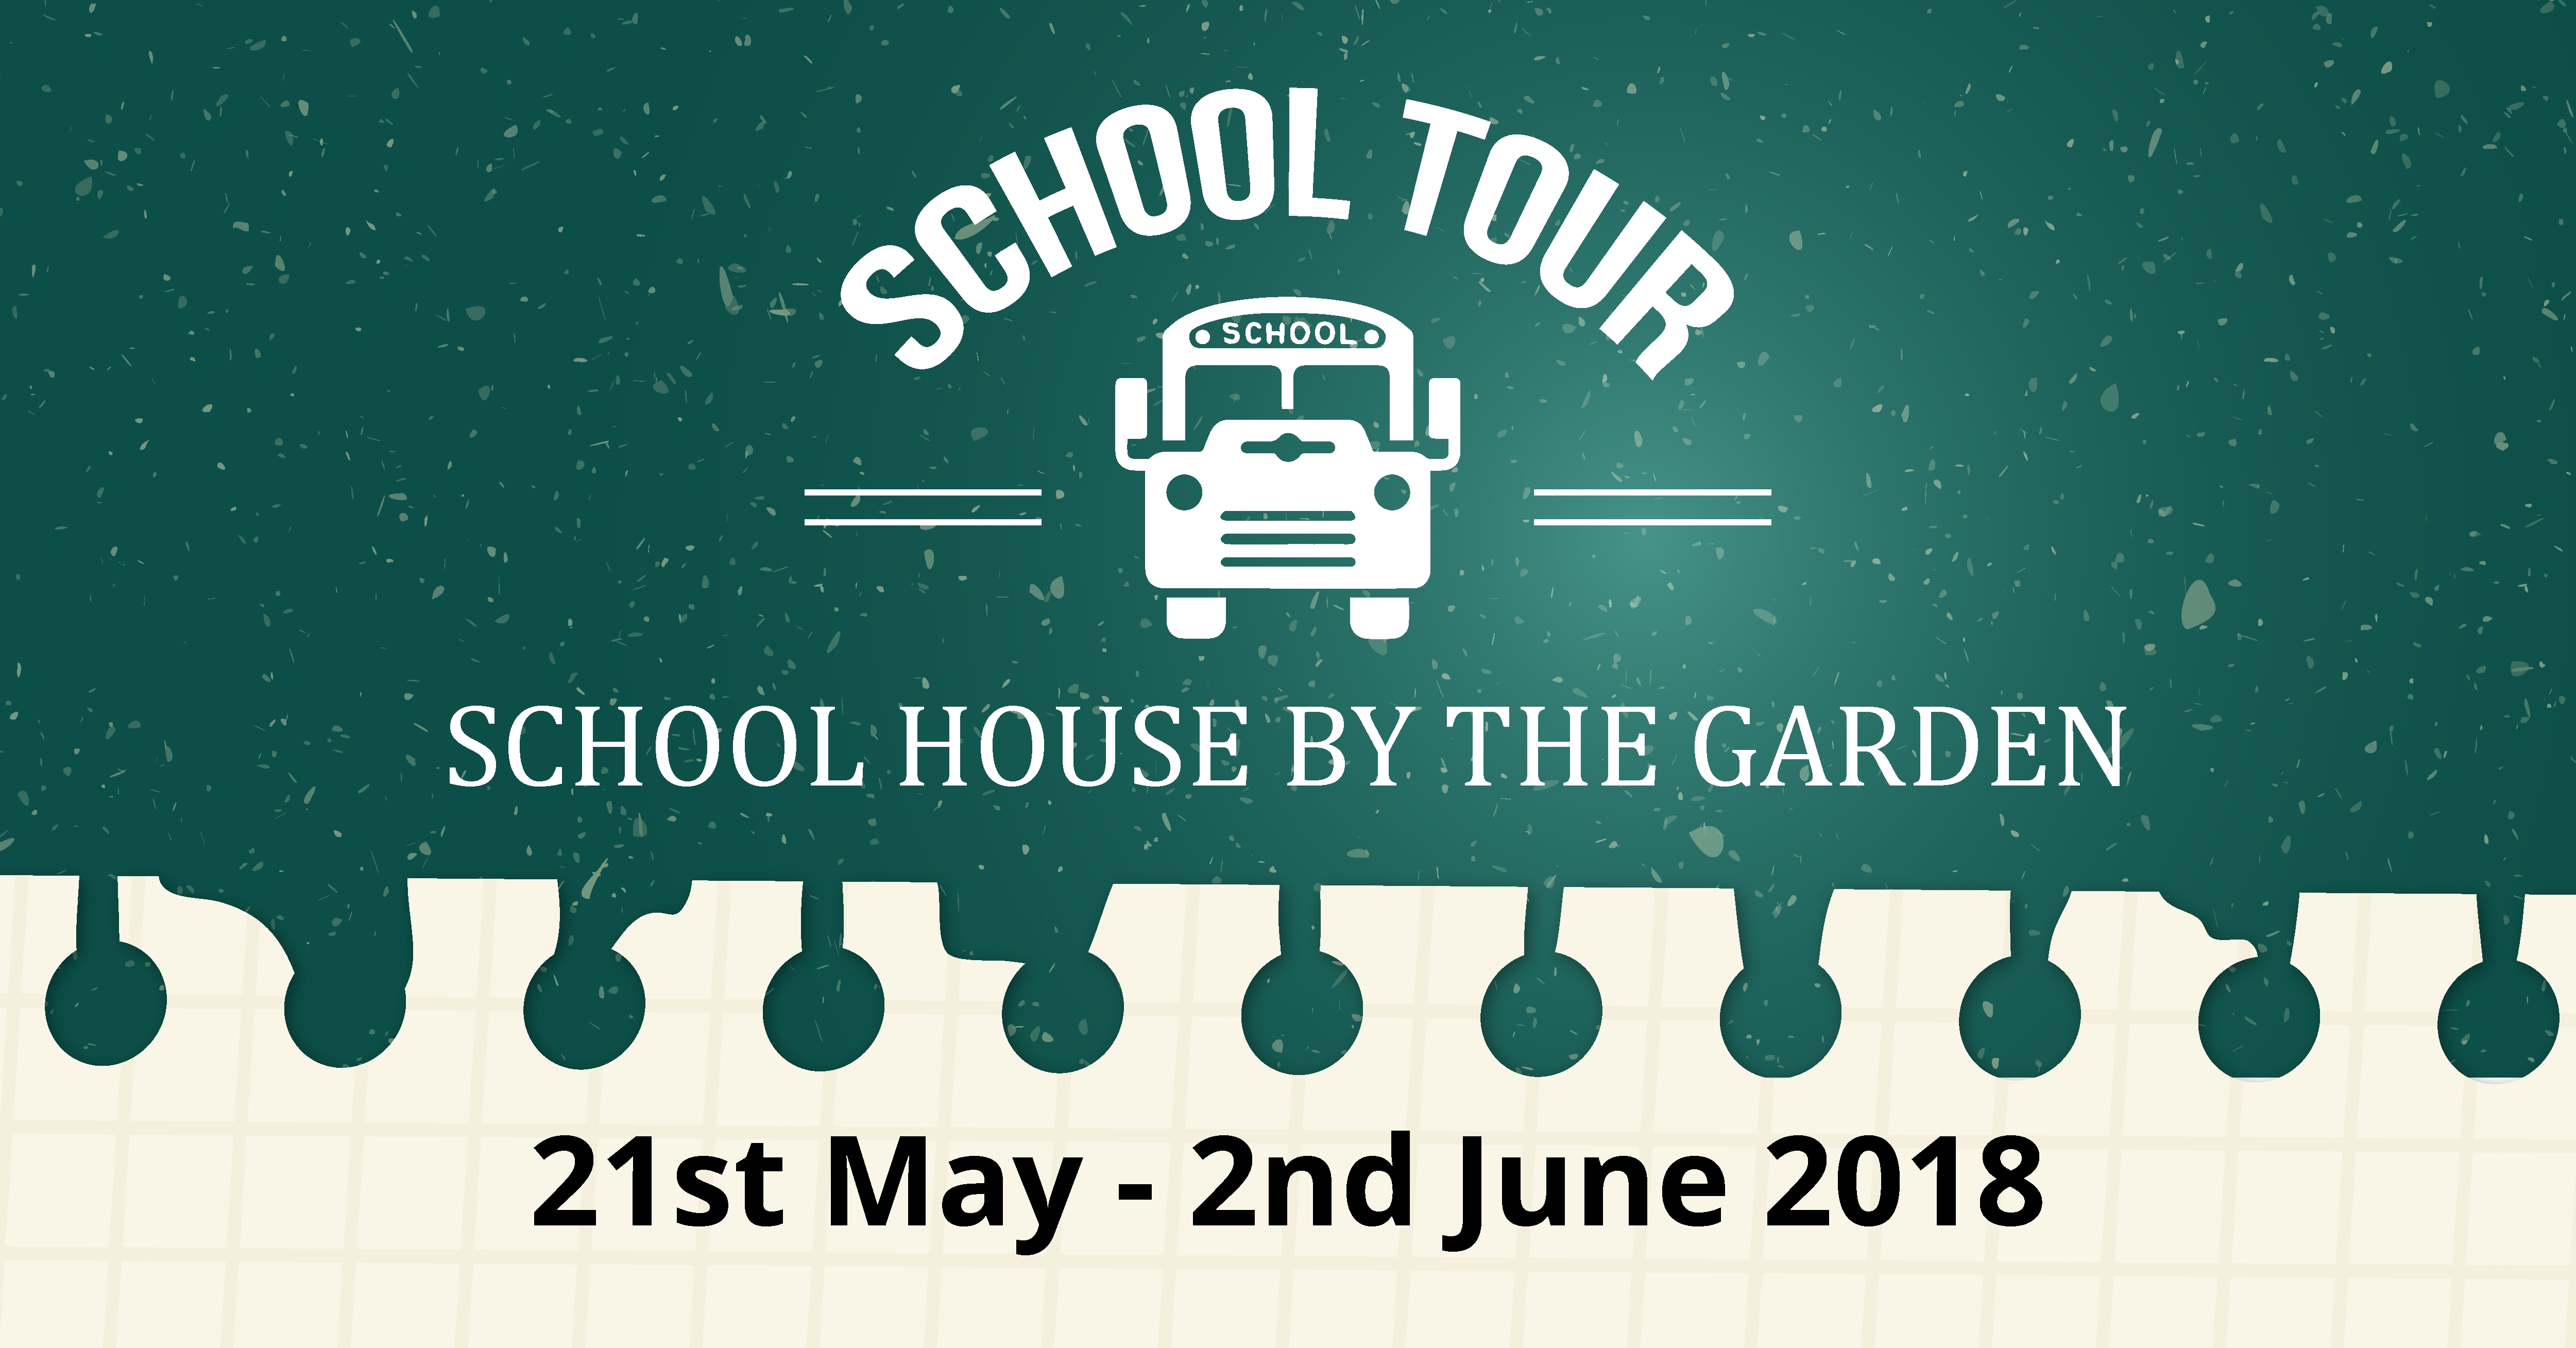 School Tour @ School House By The Garden - School House Bythegarden inside School House By The Garden Hougang